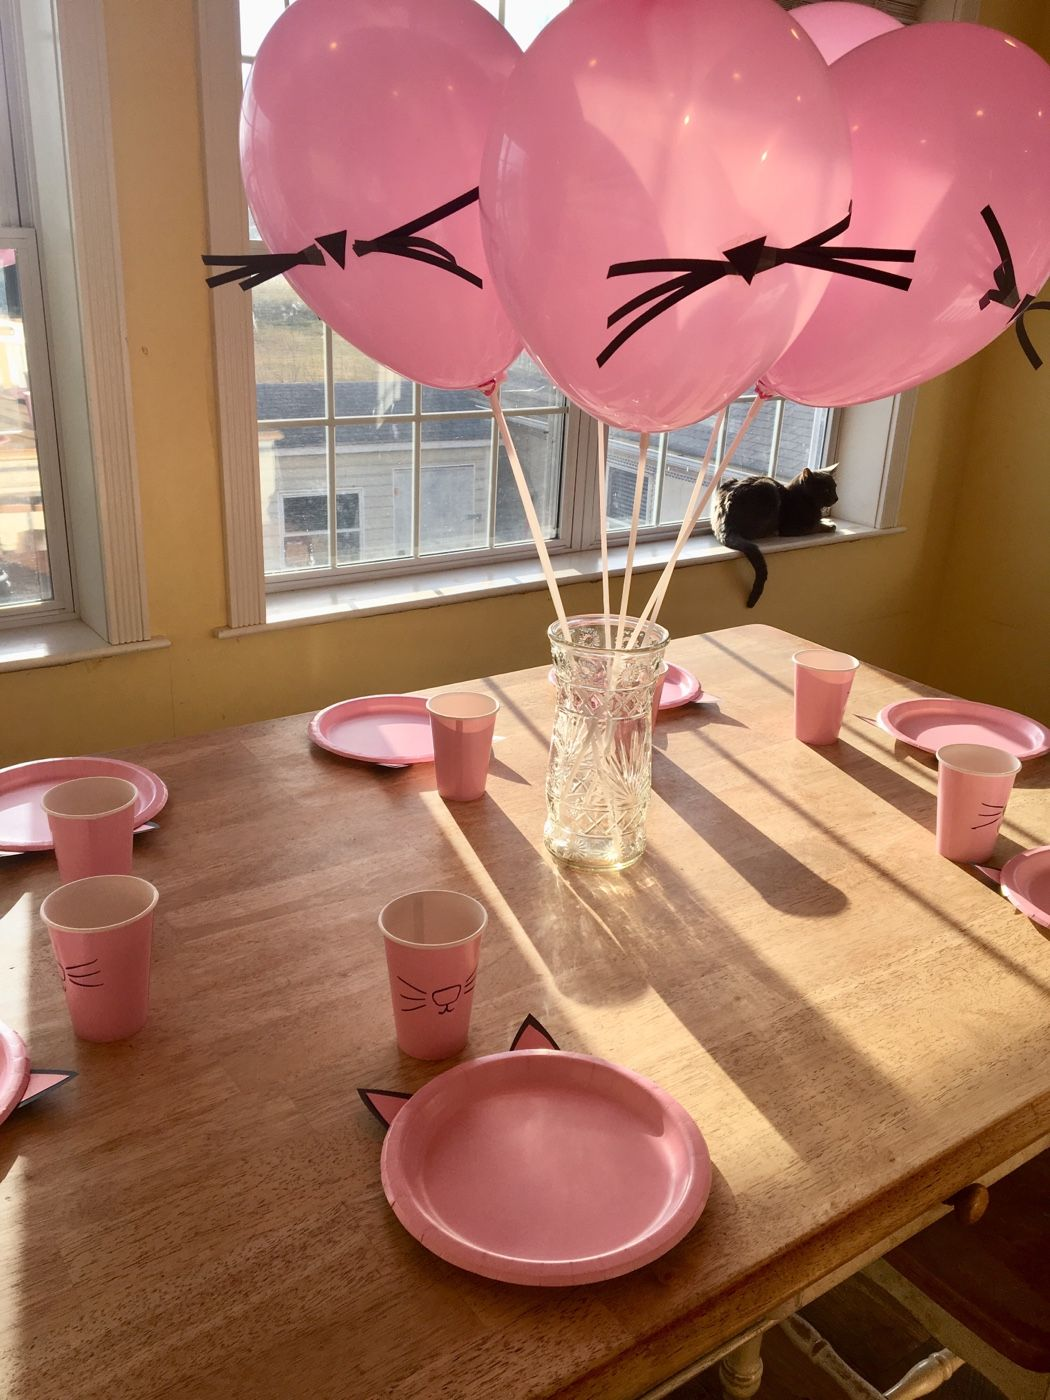 Kitty Cat Birthday Party Theme on a Budget